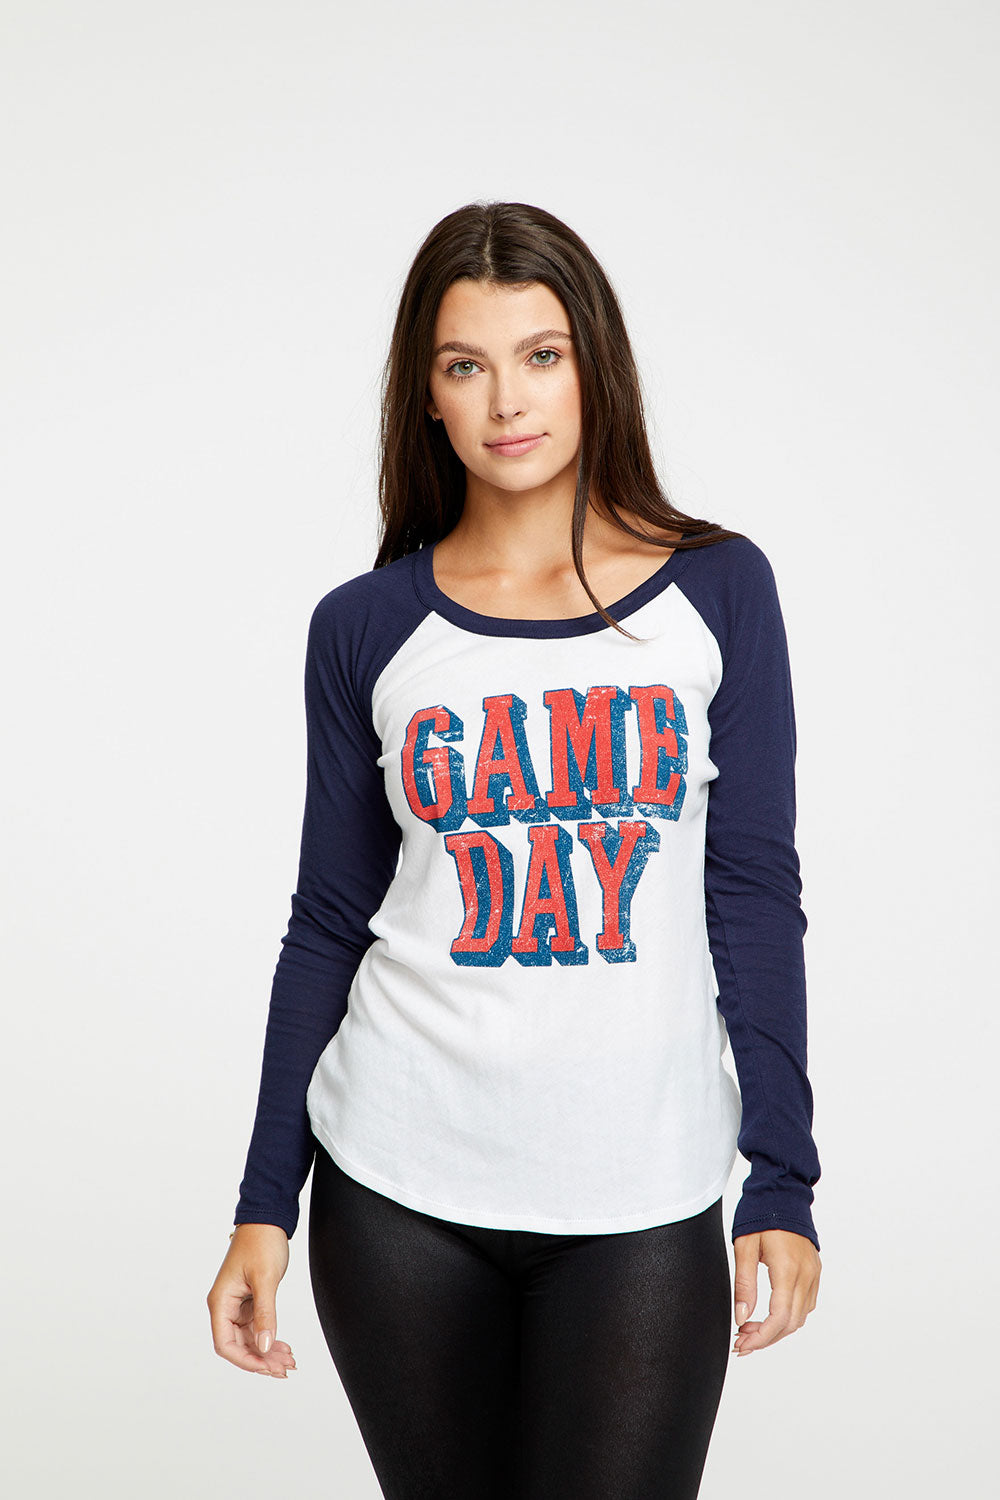 Game Day WOMENS chaserbrand4.myshopify.com